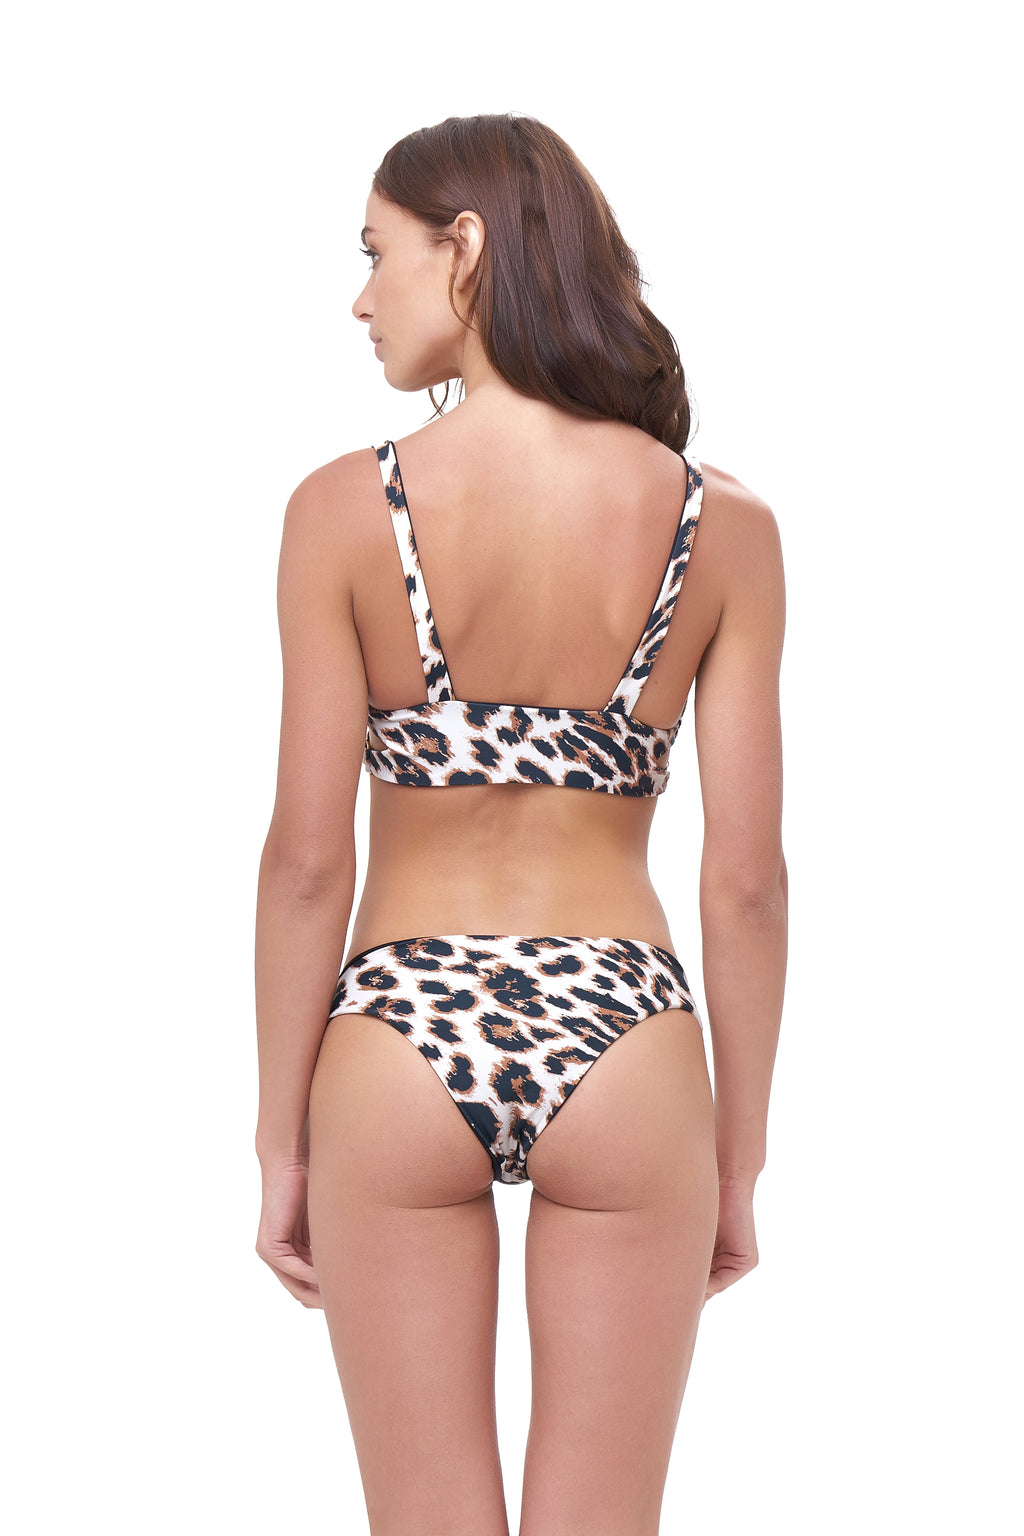 Storm Swimwear - St Barts - Bottom in Leopard Print